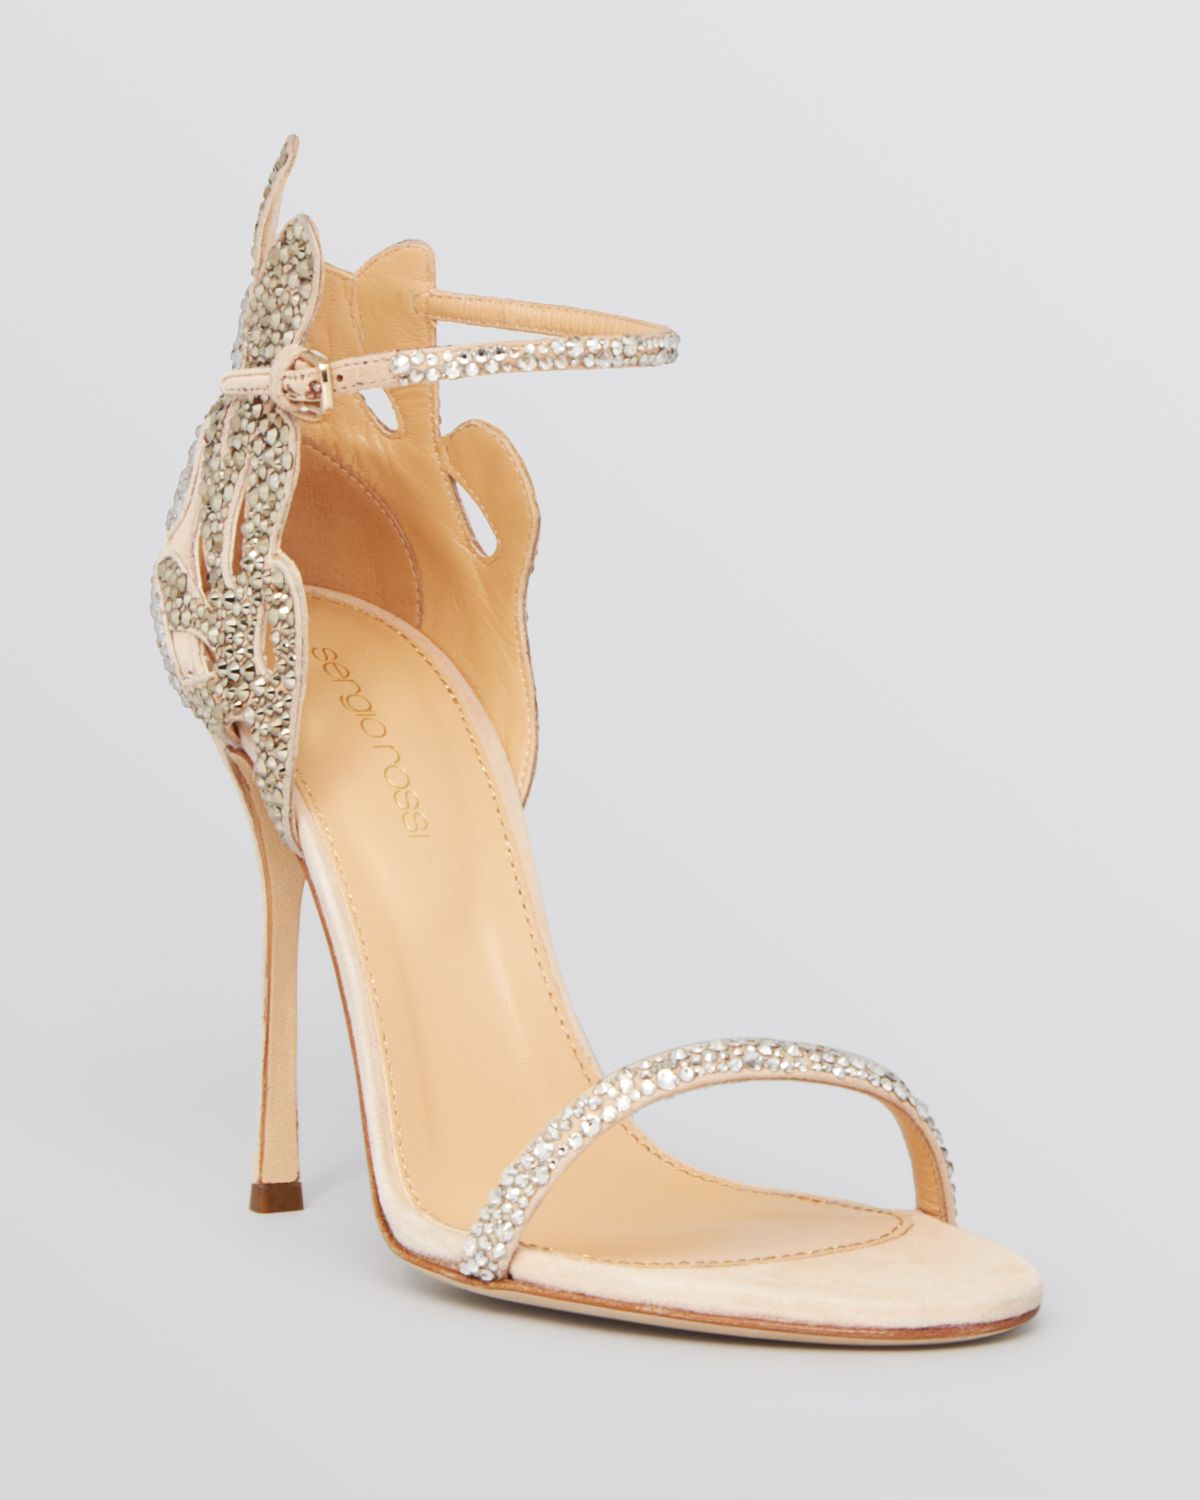 478c79c1c42e Lyst - Sergio Rossi Ankle Strap Evening Sandals - Matisse Filigree ...